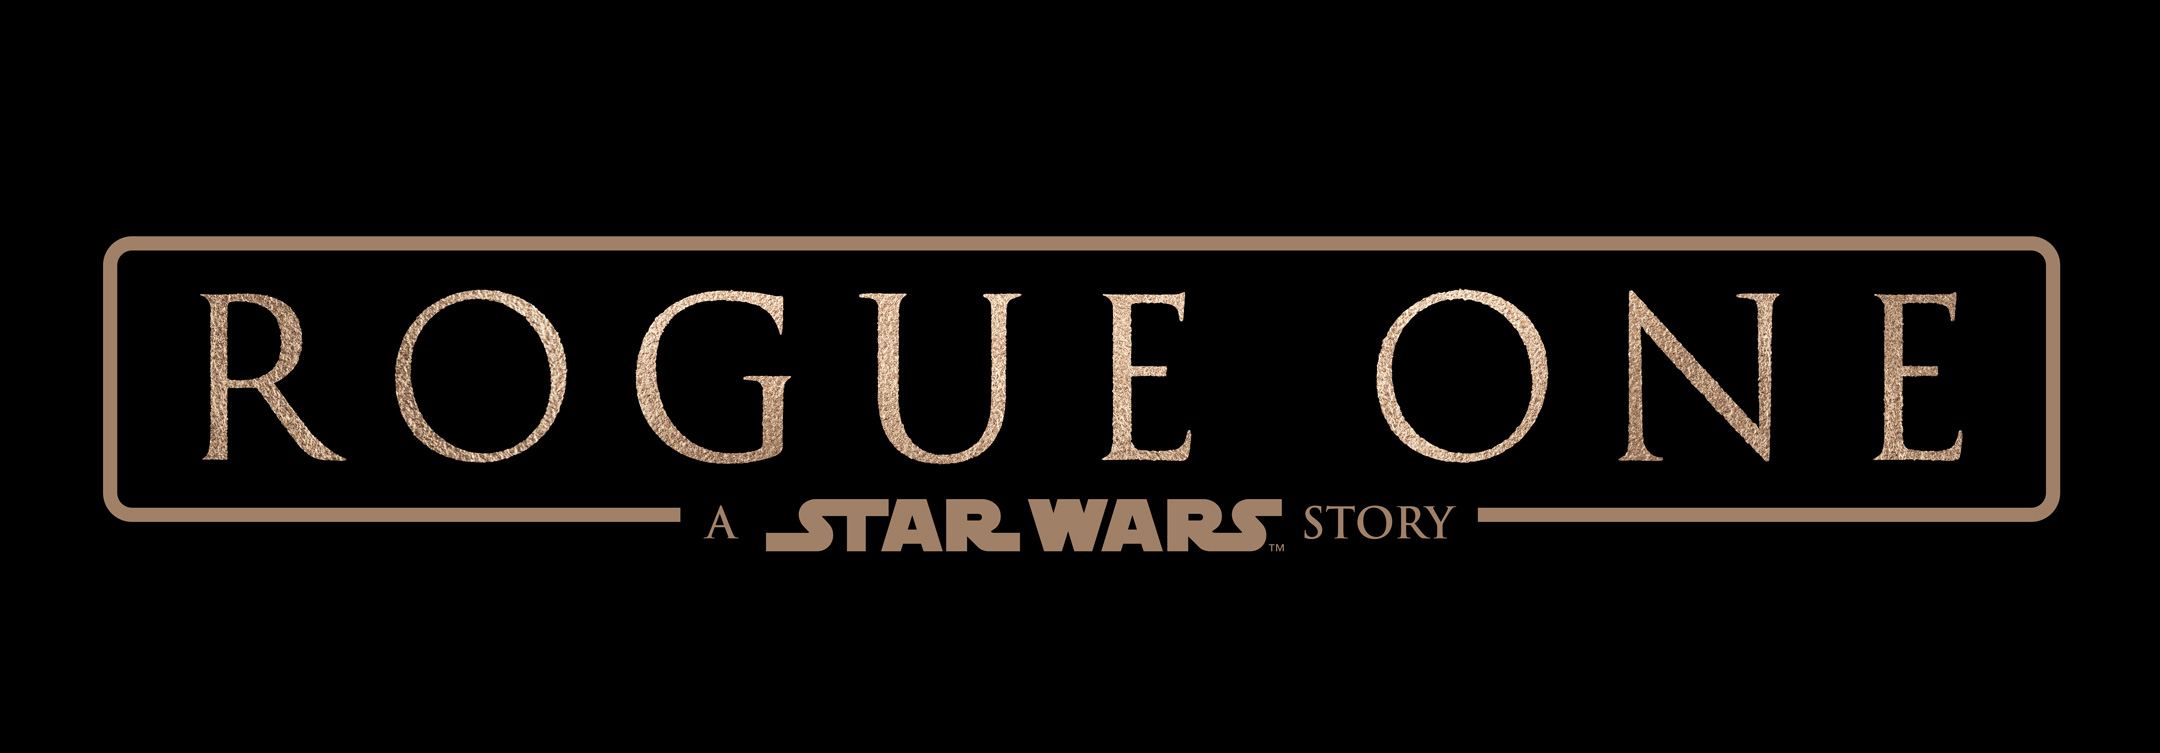 star_wars_rogue_one_banner_1